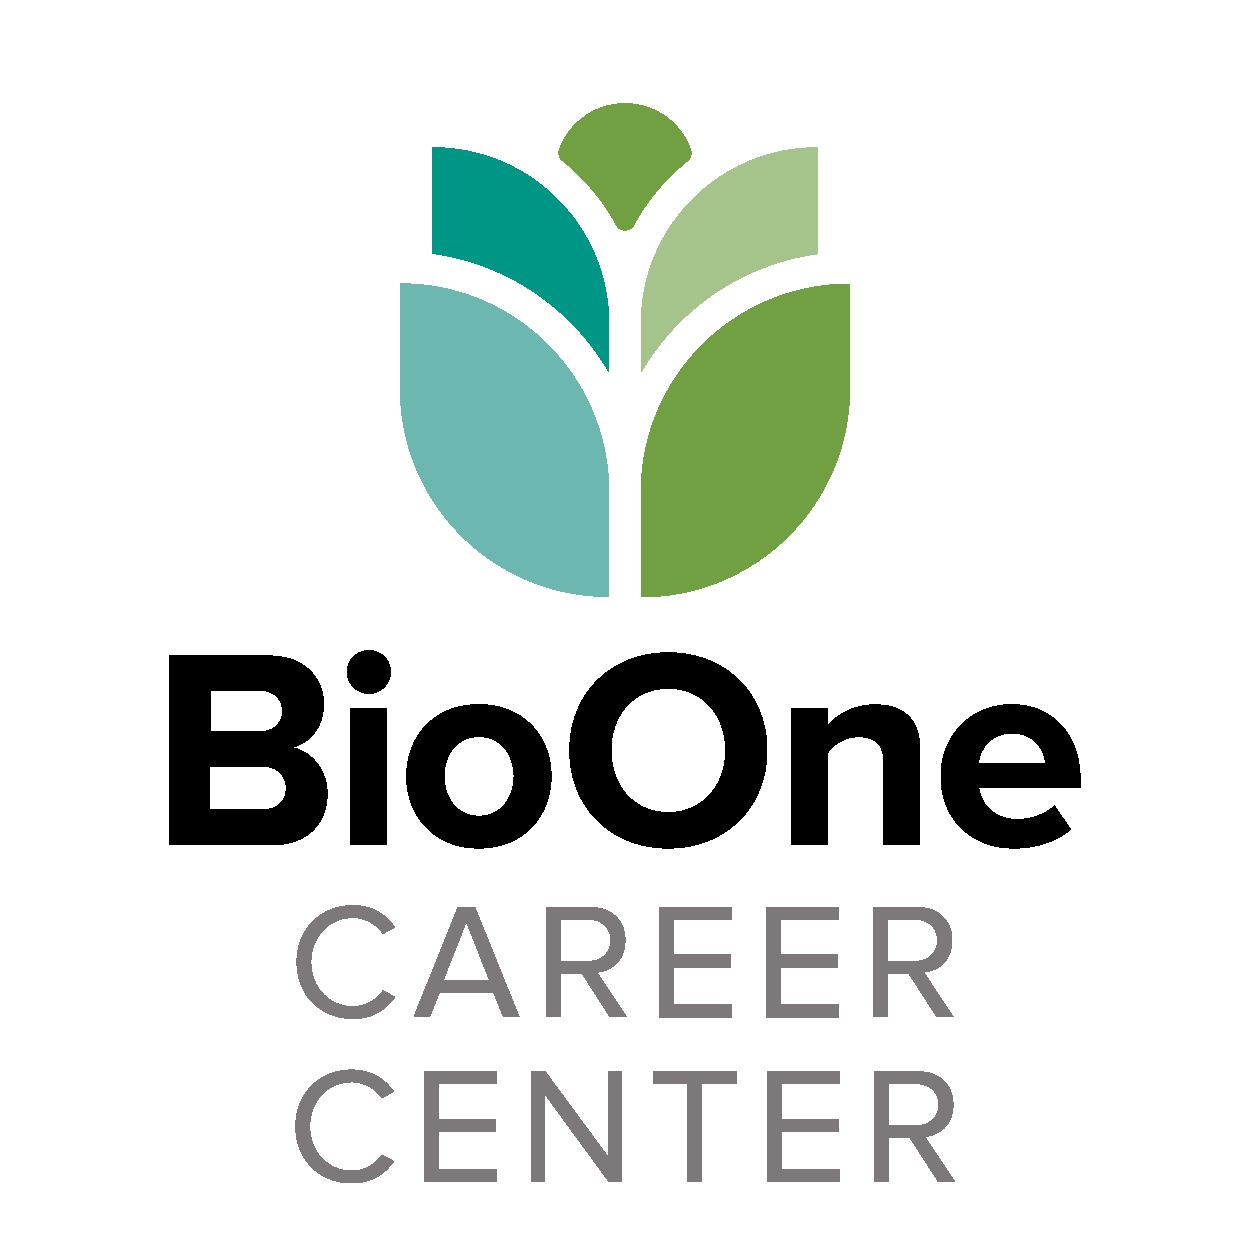 The BioOne Career Center Logo and text.